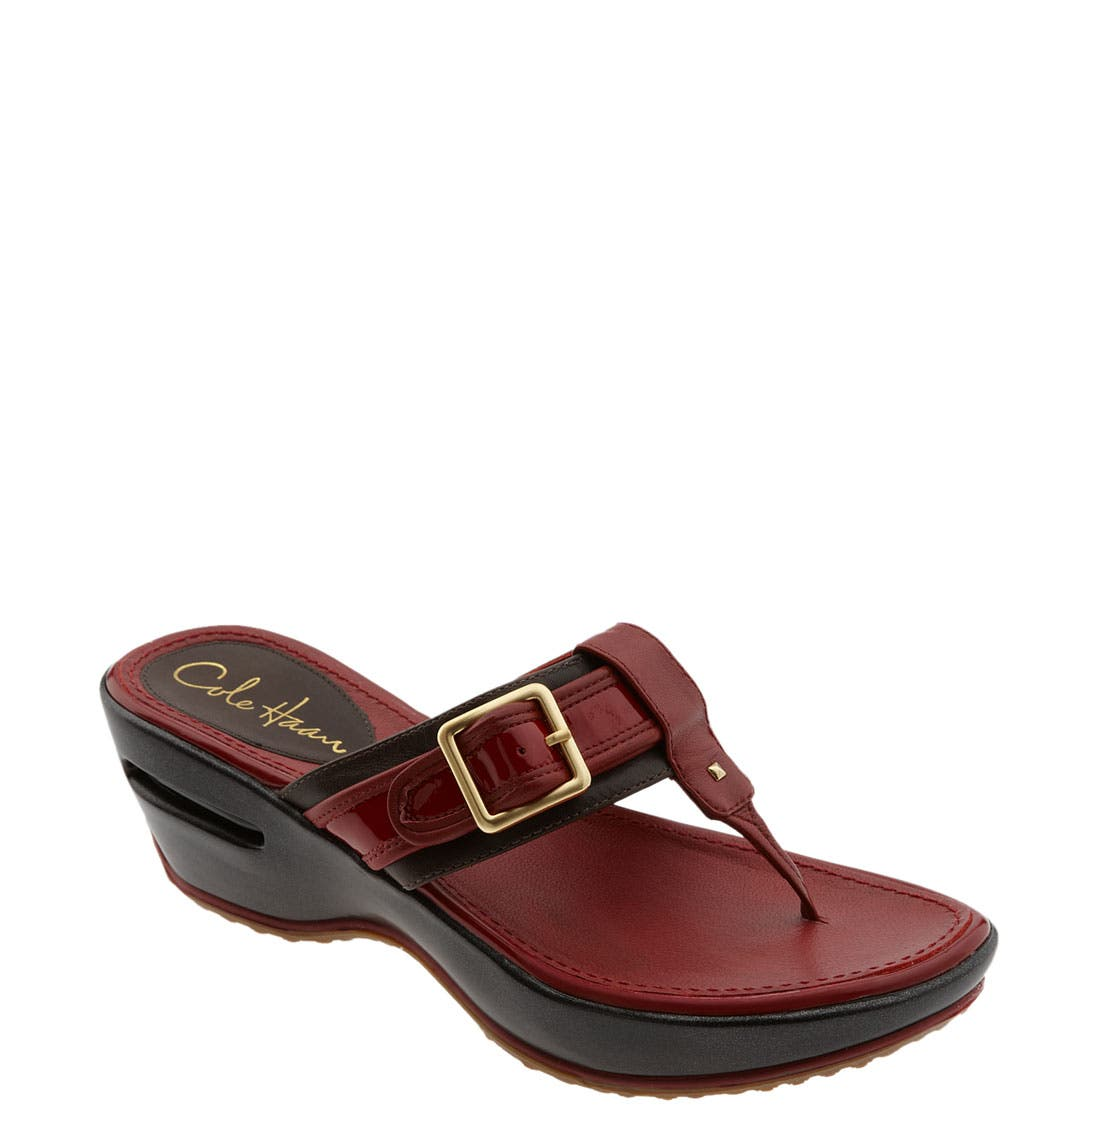 Alternate Image 1 Selected - Cole Haan 'Air Maddy' Sandal